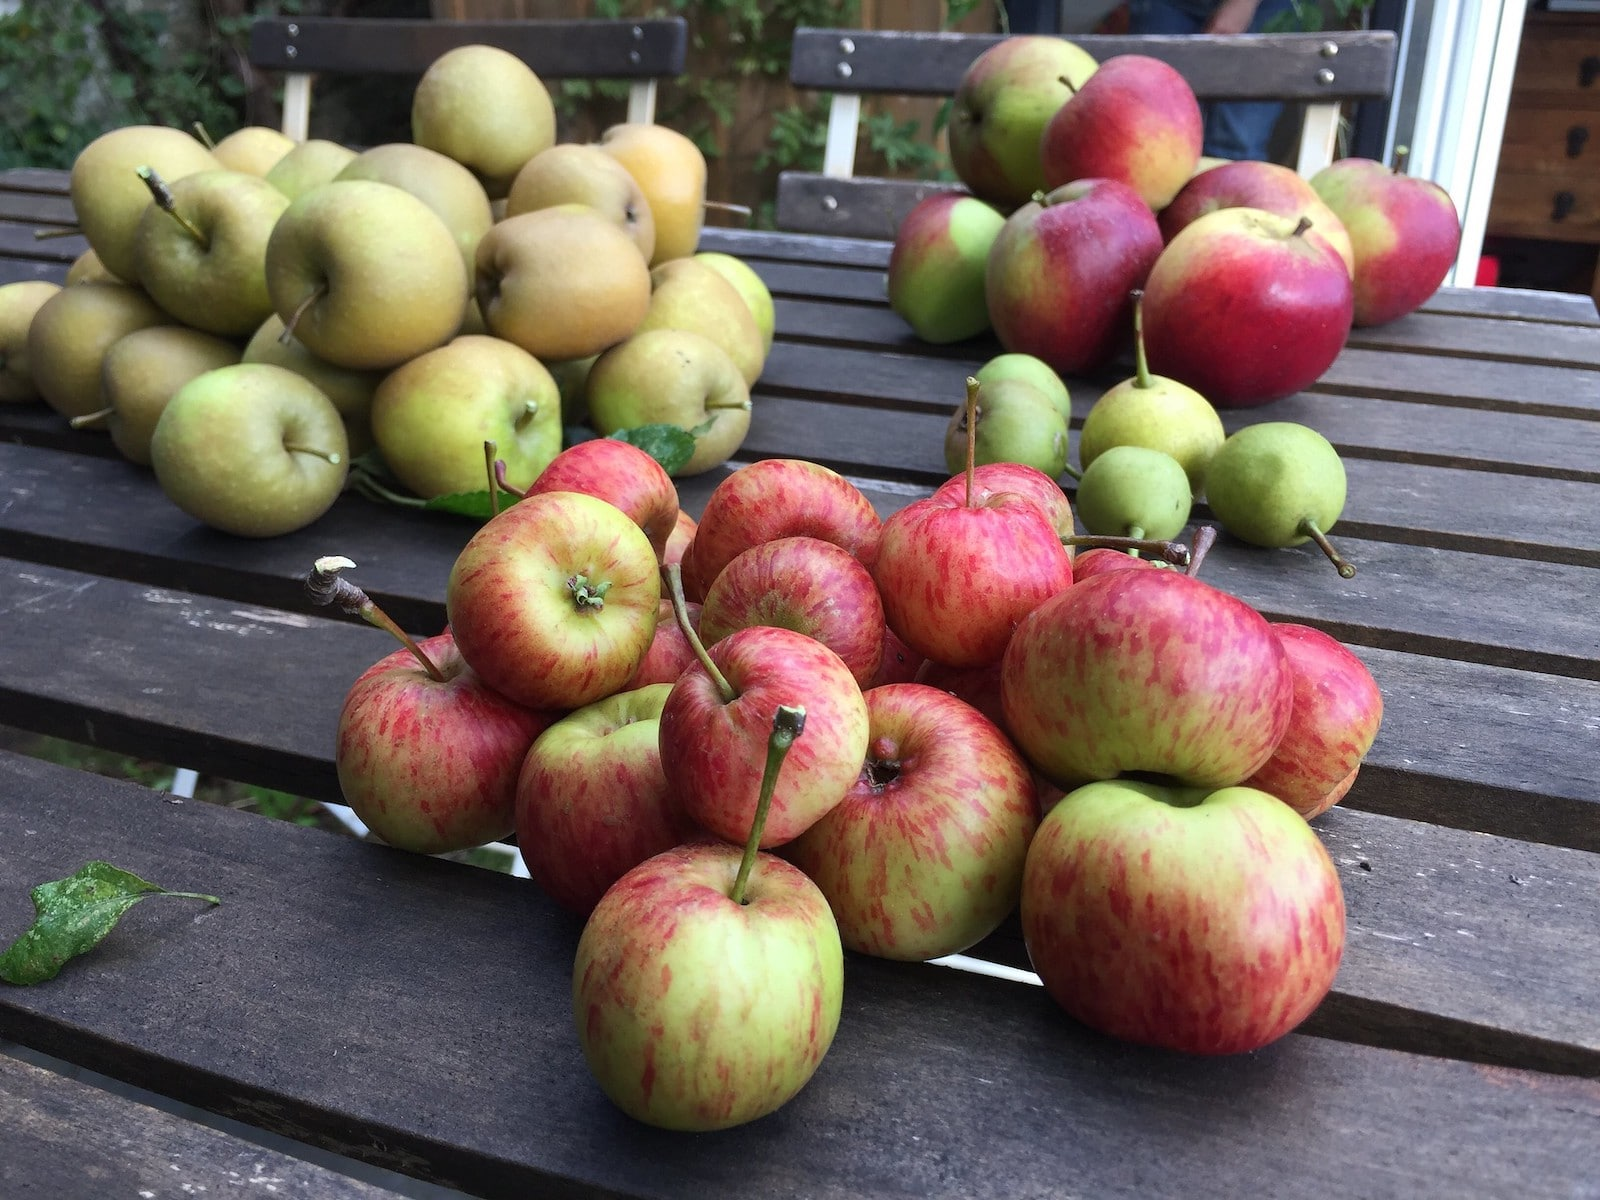 Image of apples and pears